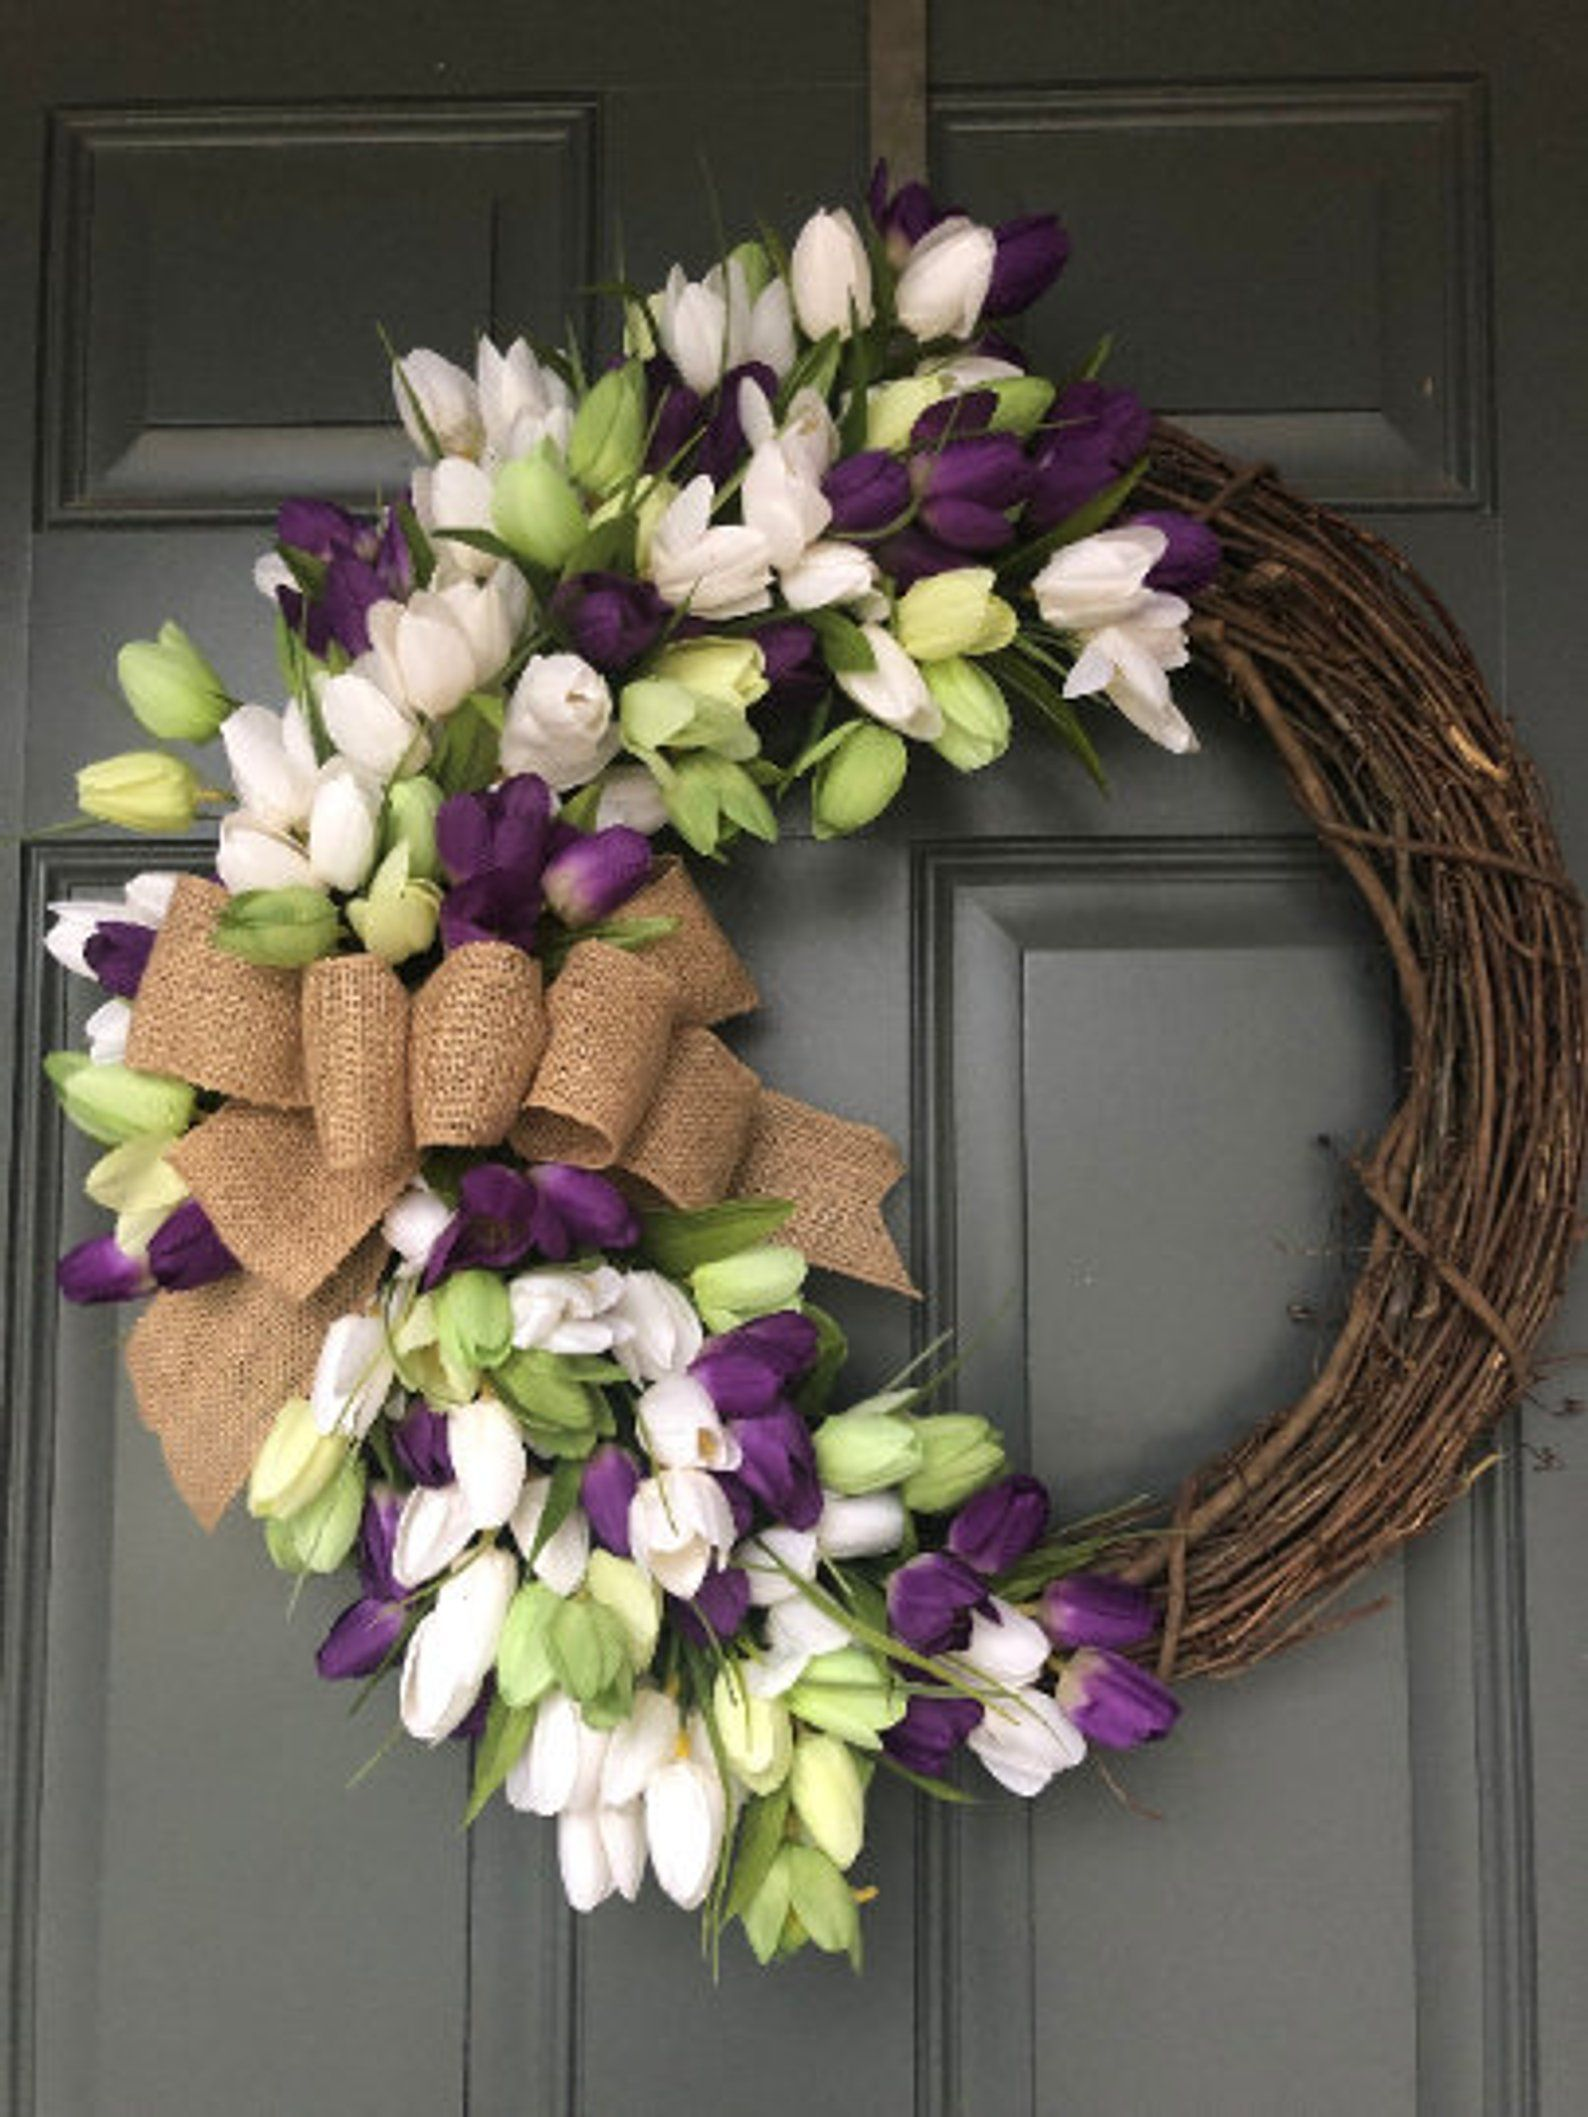 Photo of NEW! Spring wreath, Tulip Wreath, Spring Wreath for front door, everyday wreaths for front door, wreaths for front door, Spring Wreaths